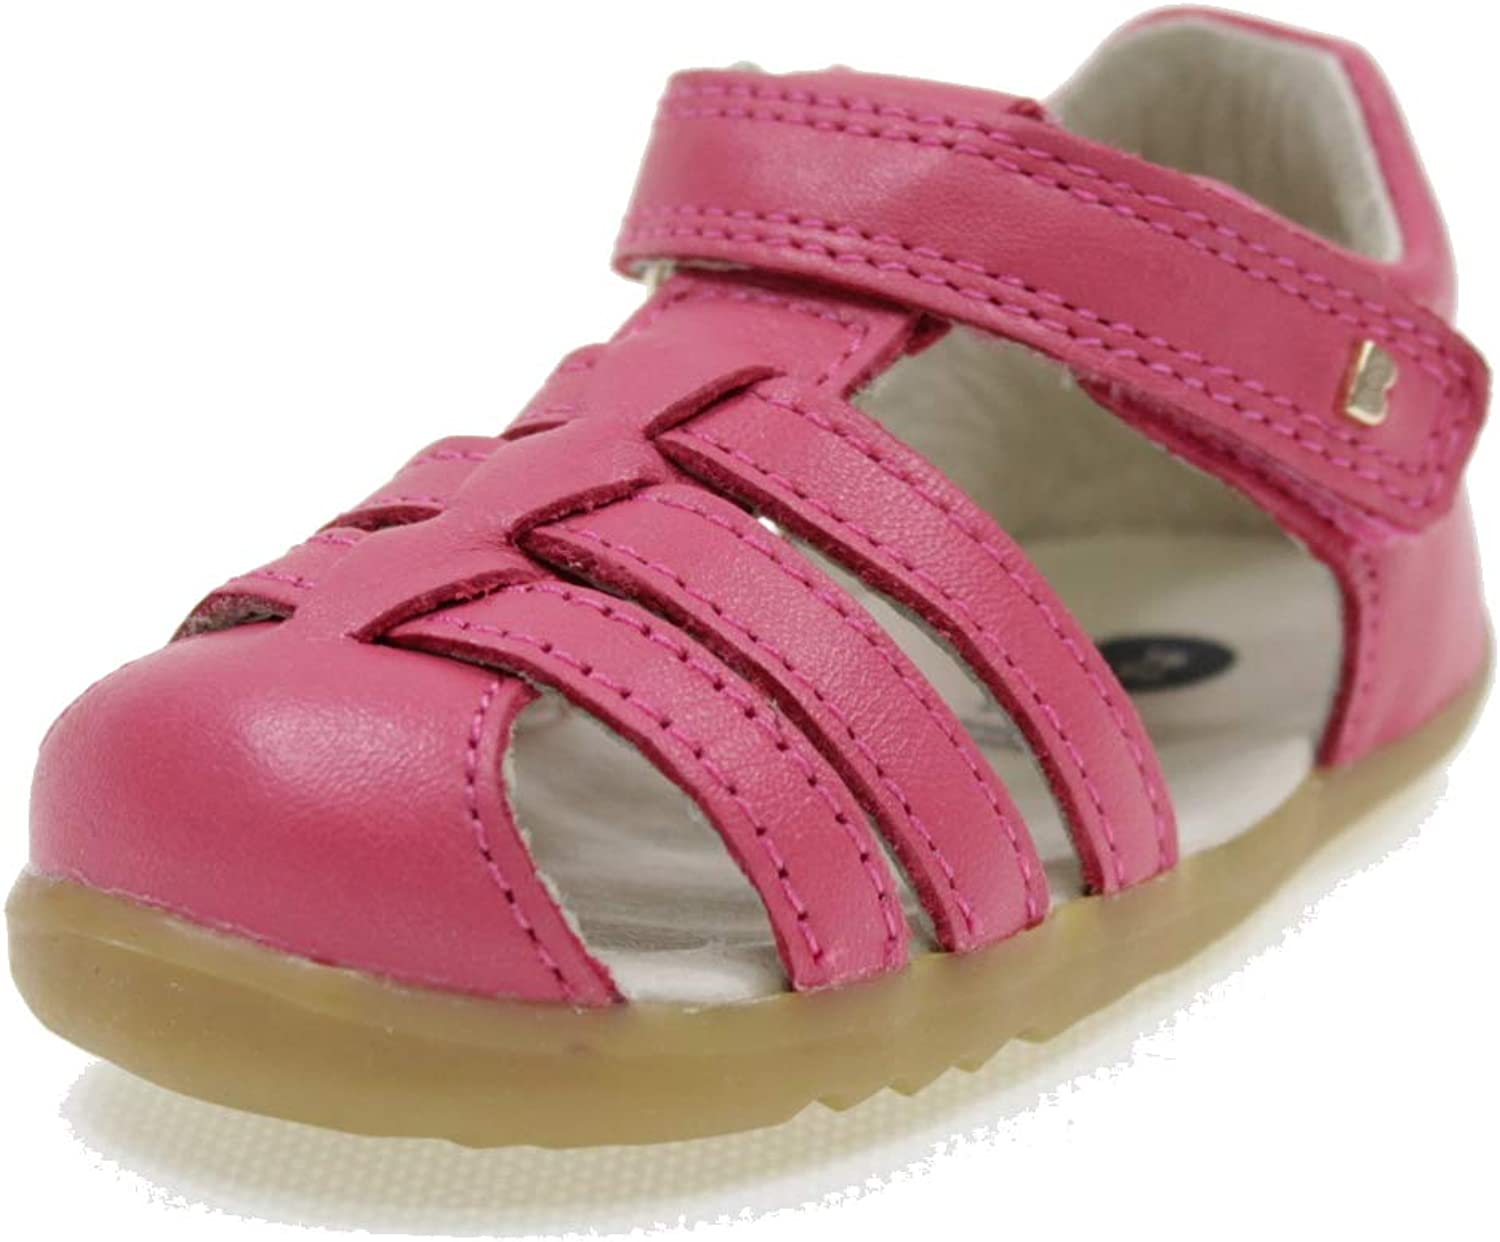 Bobux Girls' Track & Field shoes Pink